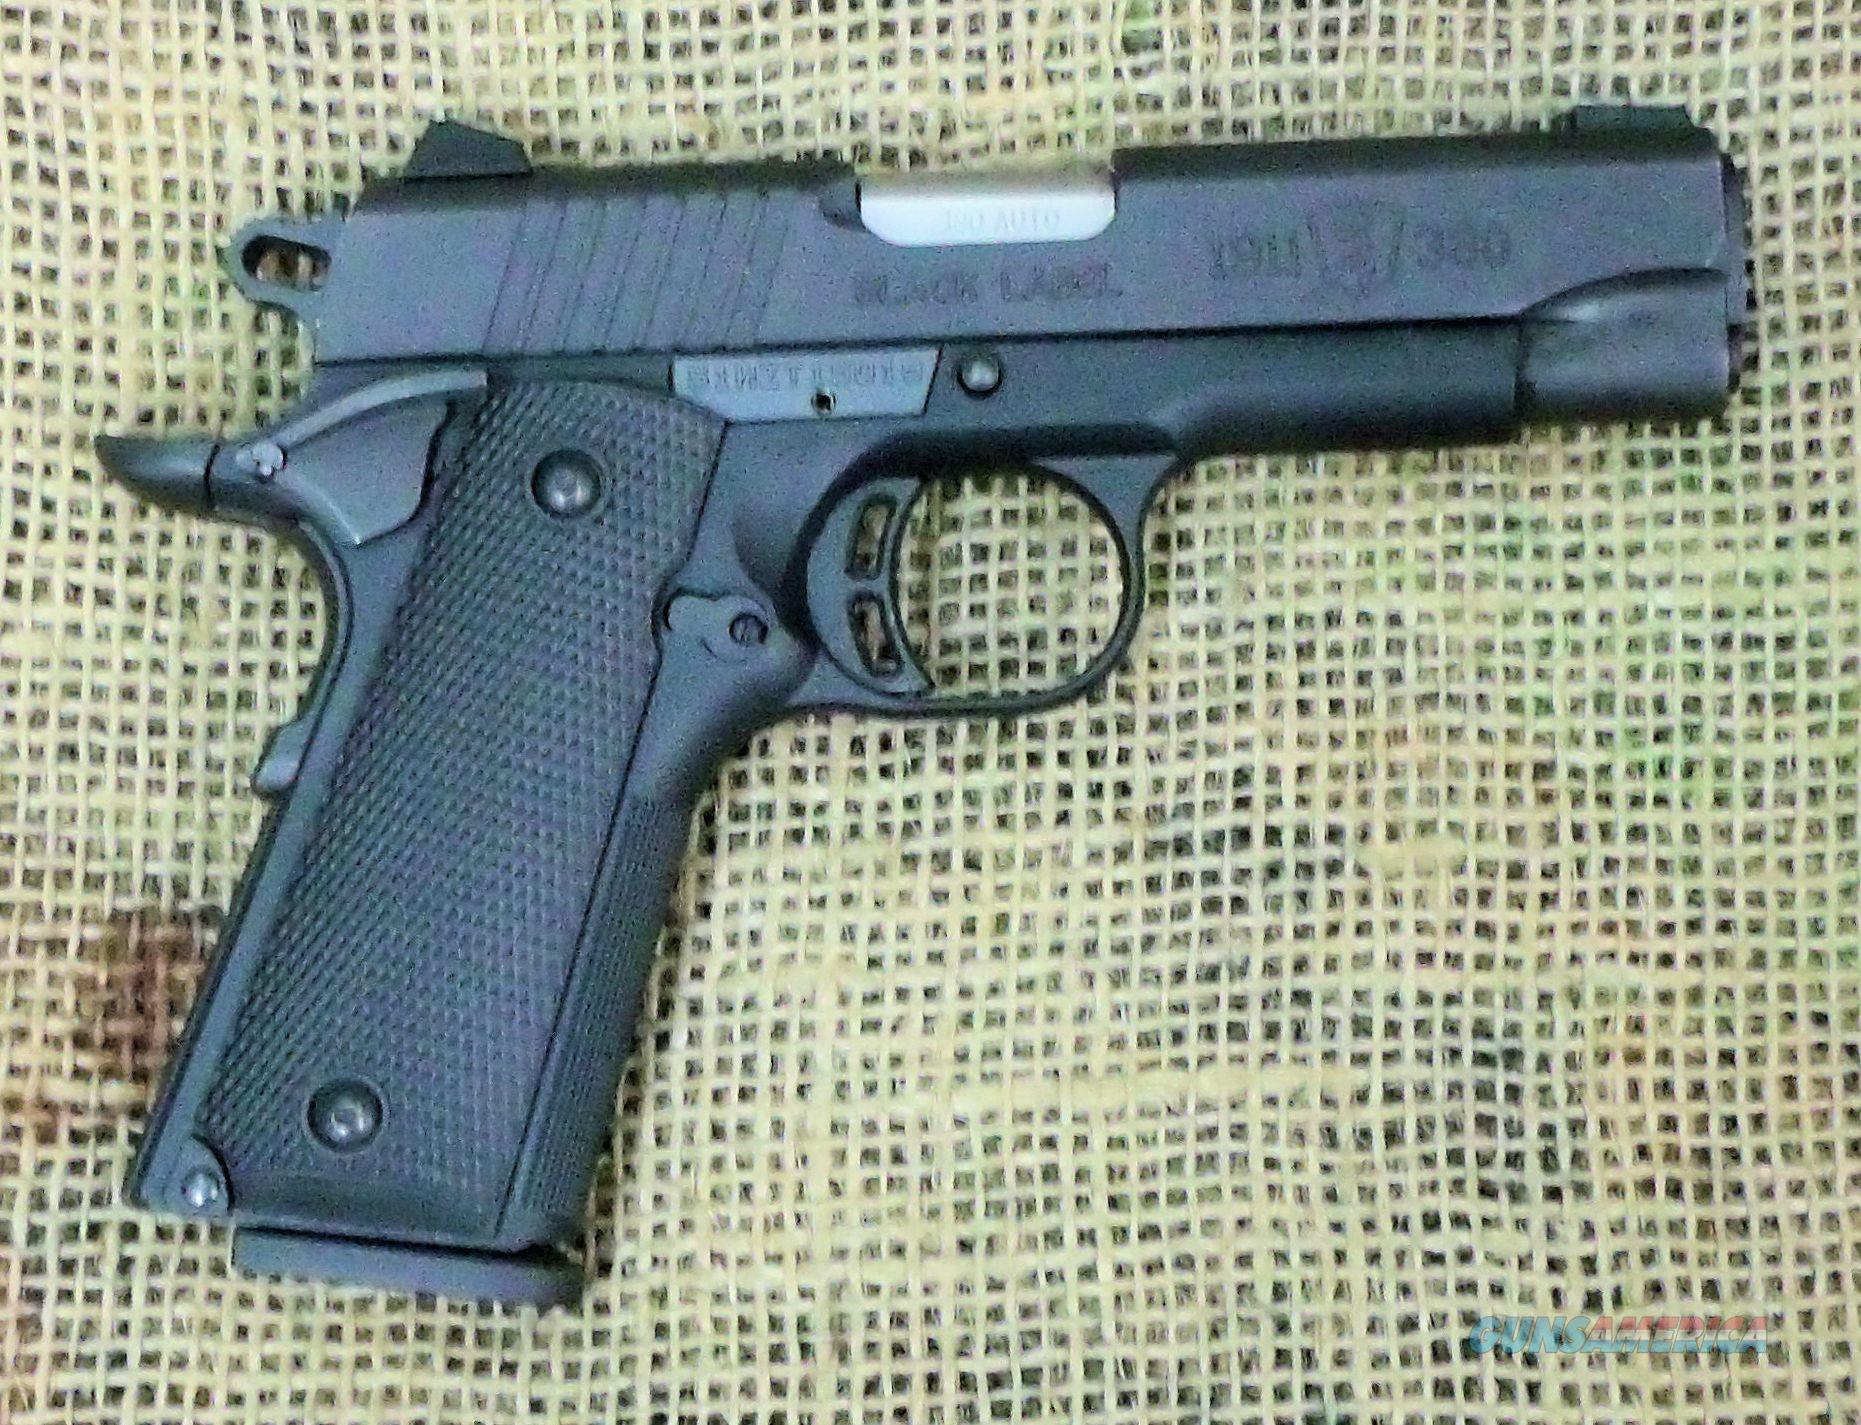 BROWNING 1911-380 Black Label Pistol, 380ACP Cal  Guns > Pistols > Browning Pistols > Other Autos